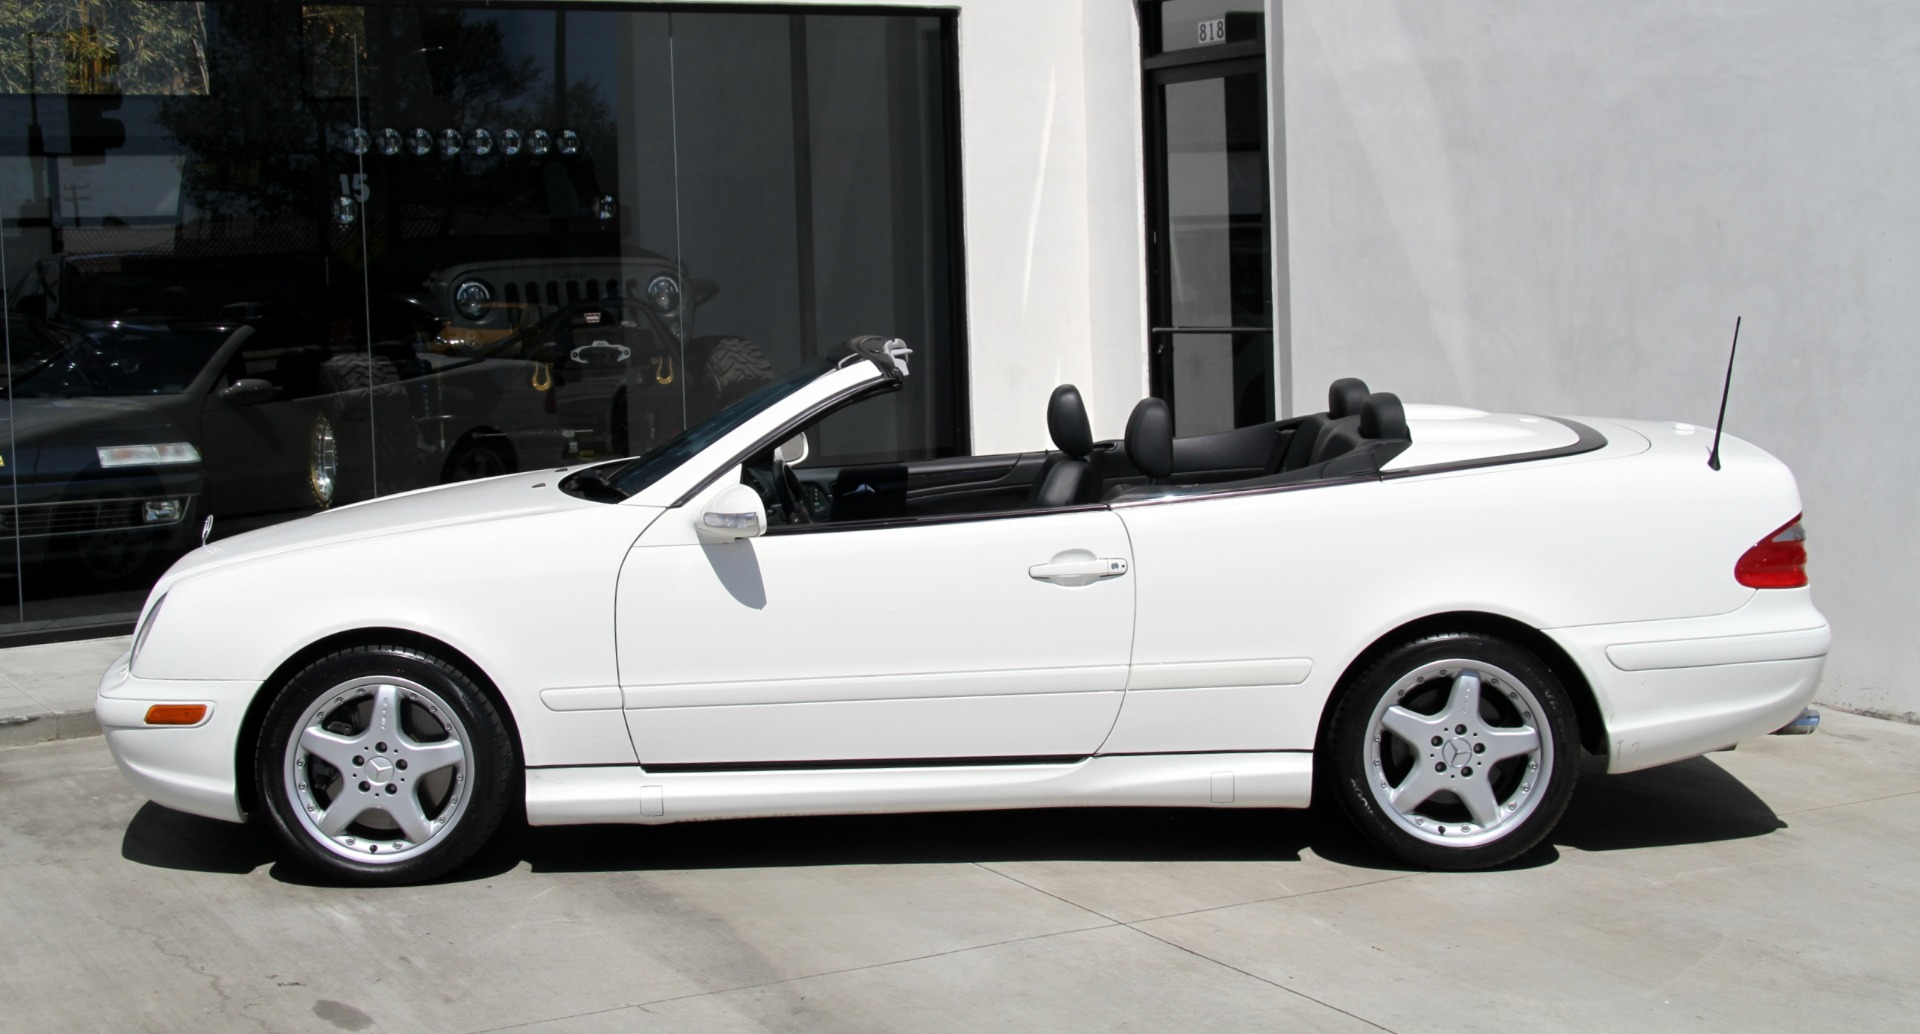 Hwy 55 Near Me >> 2002 Mercedes-Benz CLK 55 AMG *** LOW MILES *** Stock ...